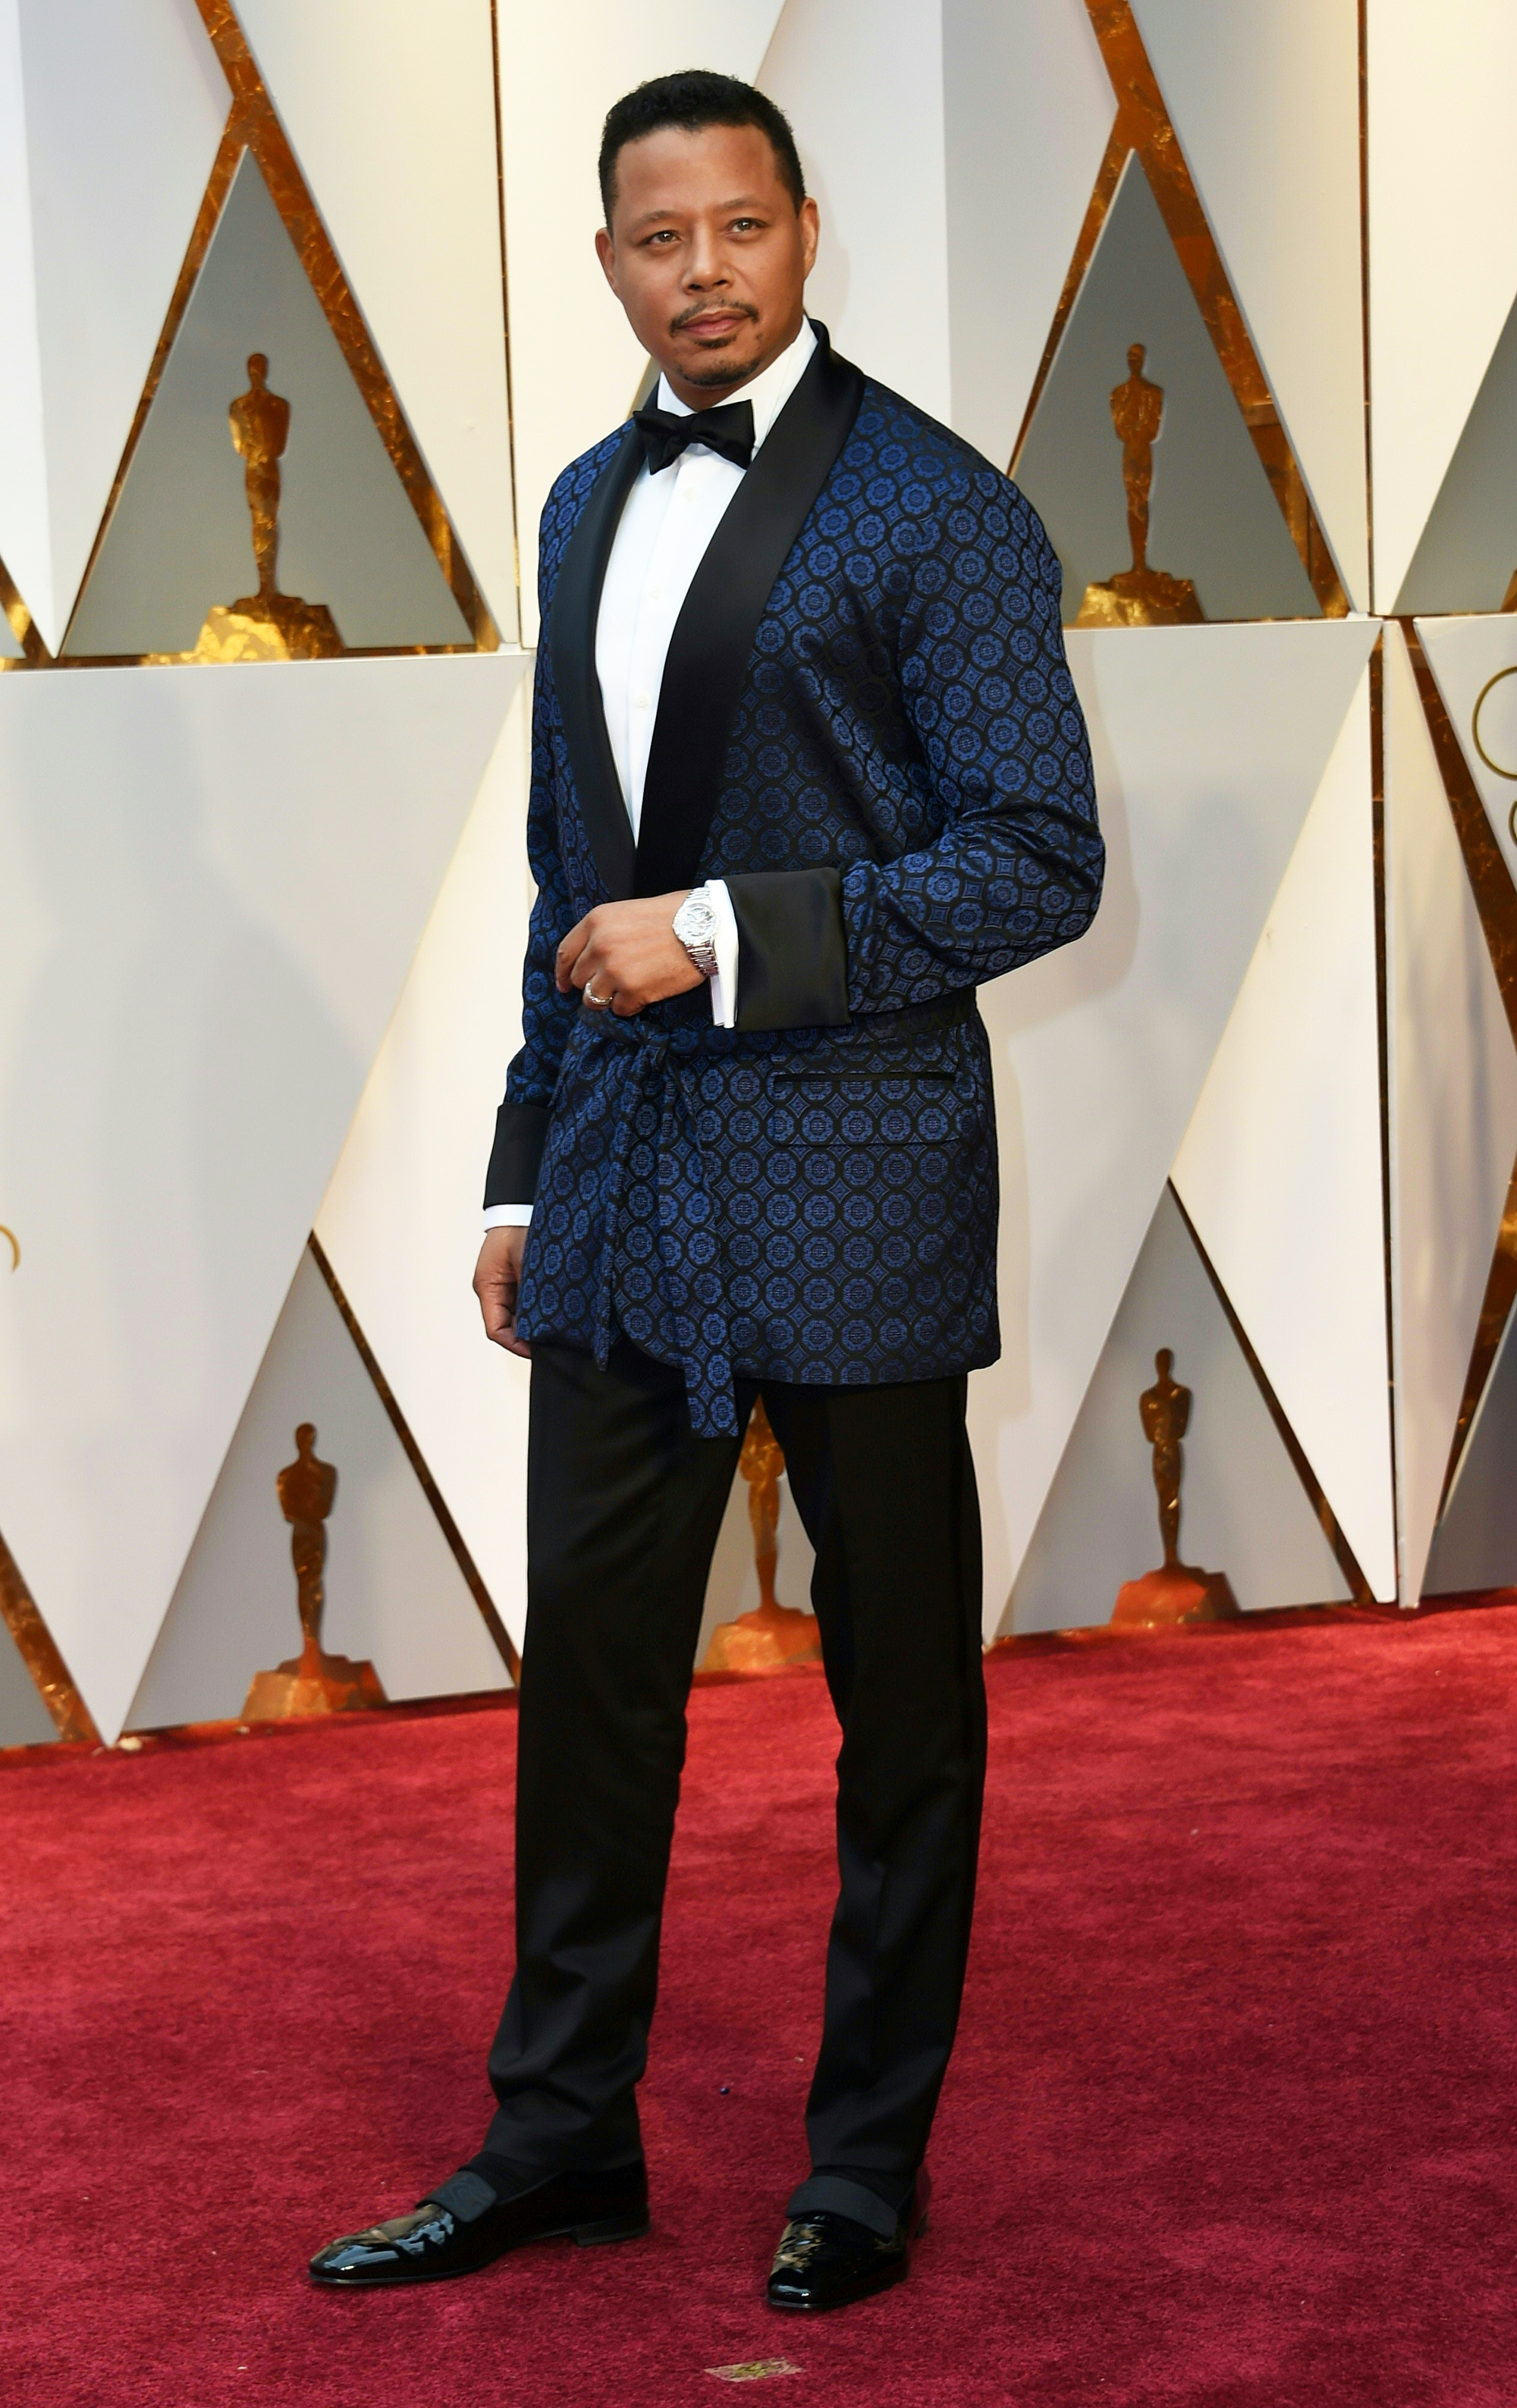 Terrence Howard on the red carpet for the 89th Oscars, on Feb. 26, 2017 in Hollywood, Calif.